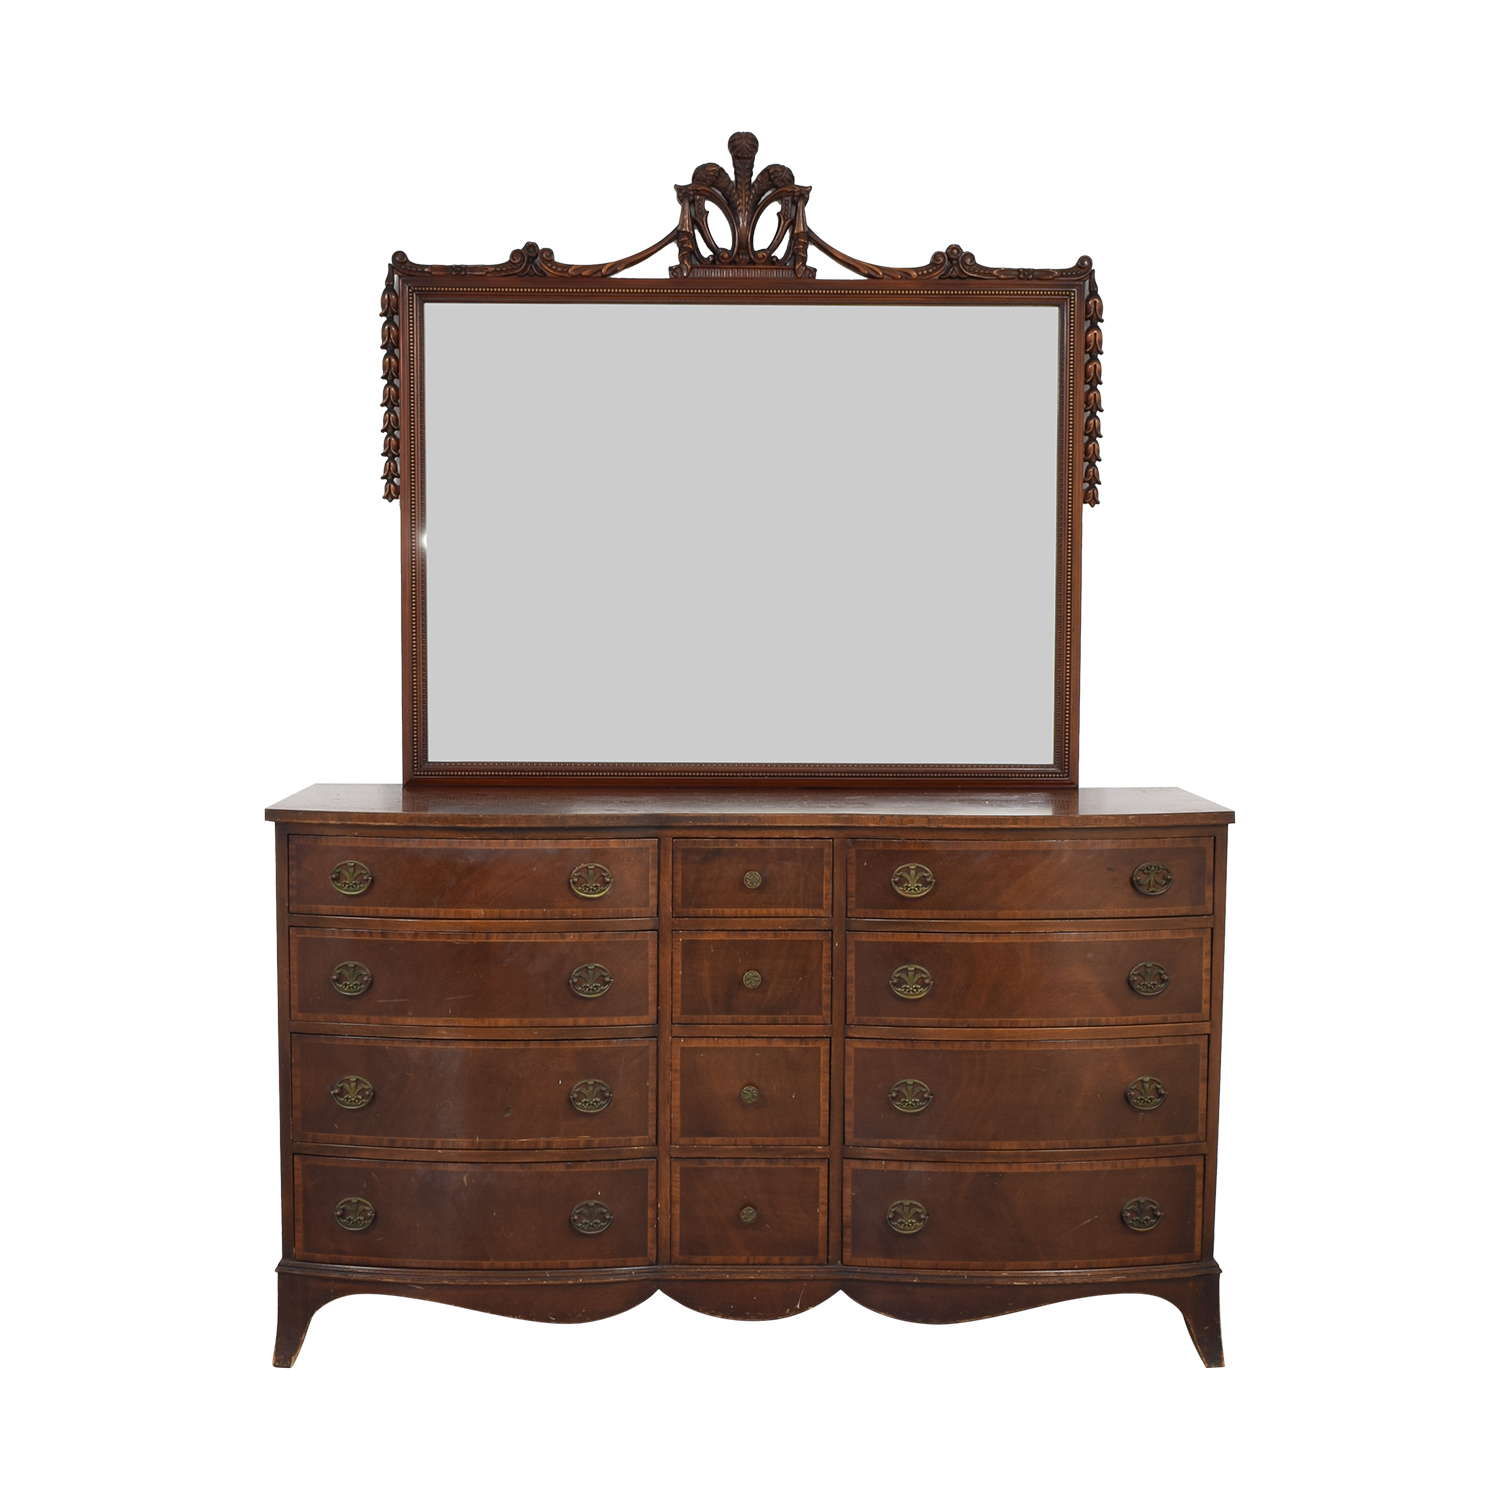 Twelve Drawer Dresser with Mirror dimensions